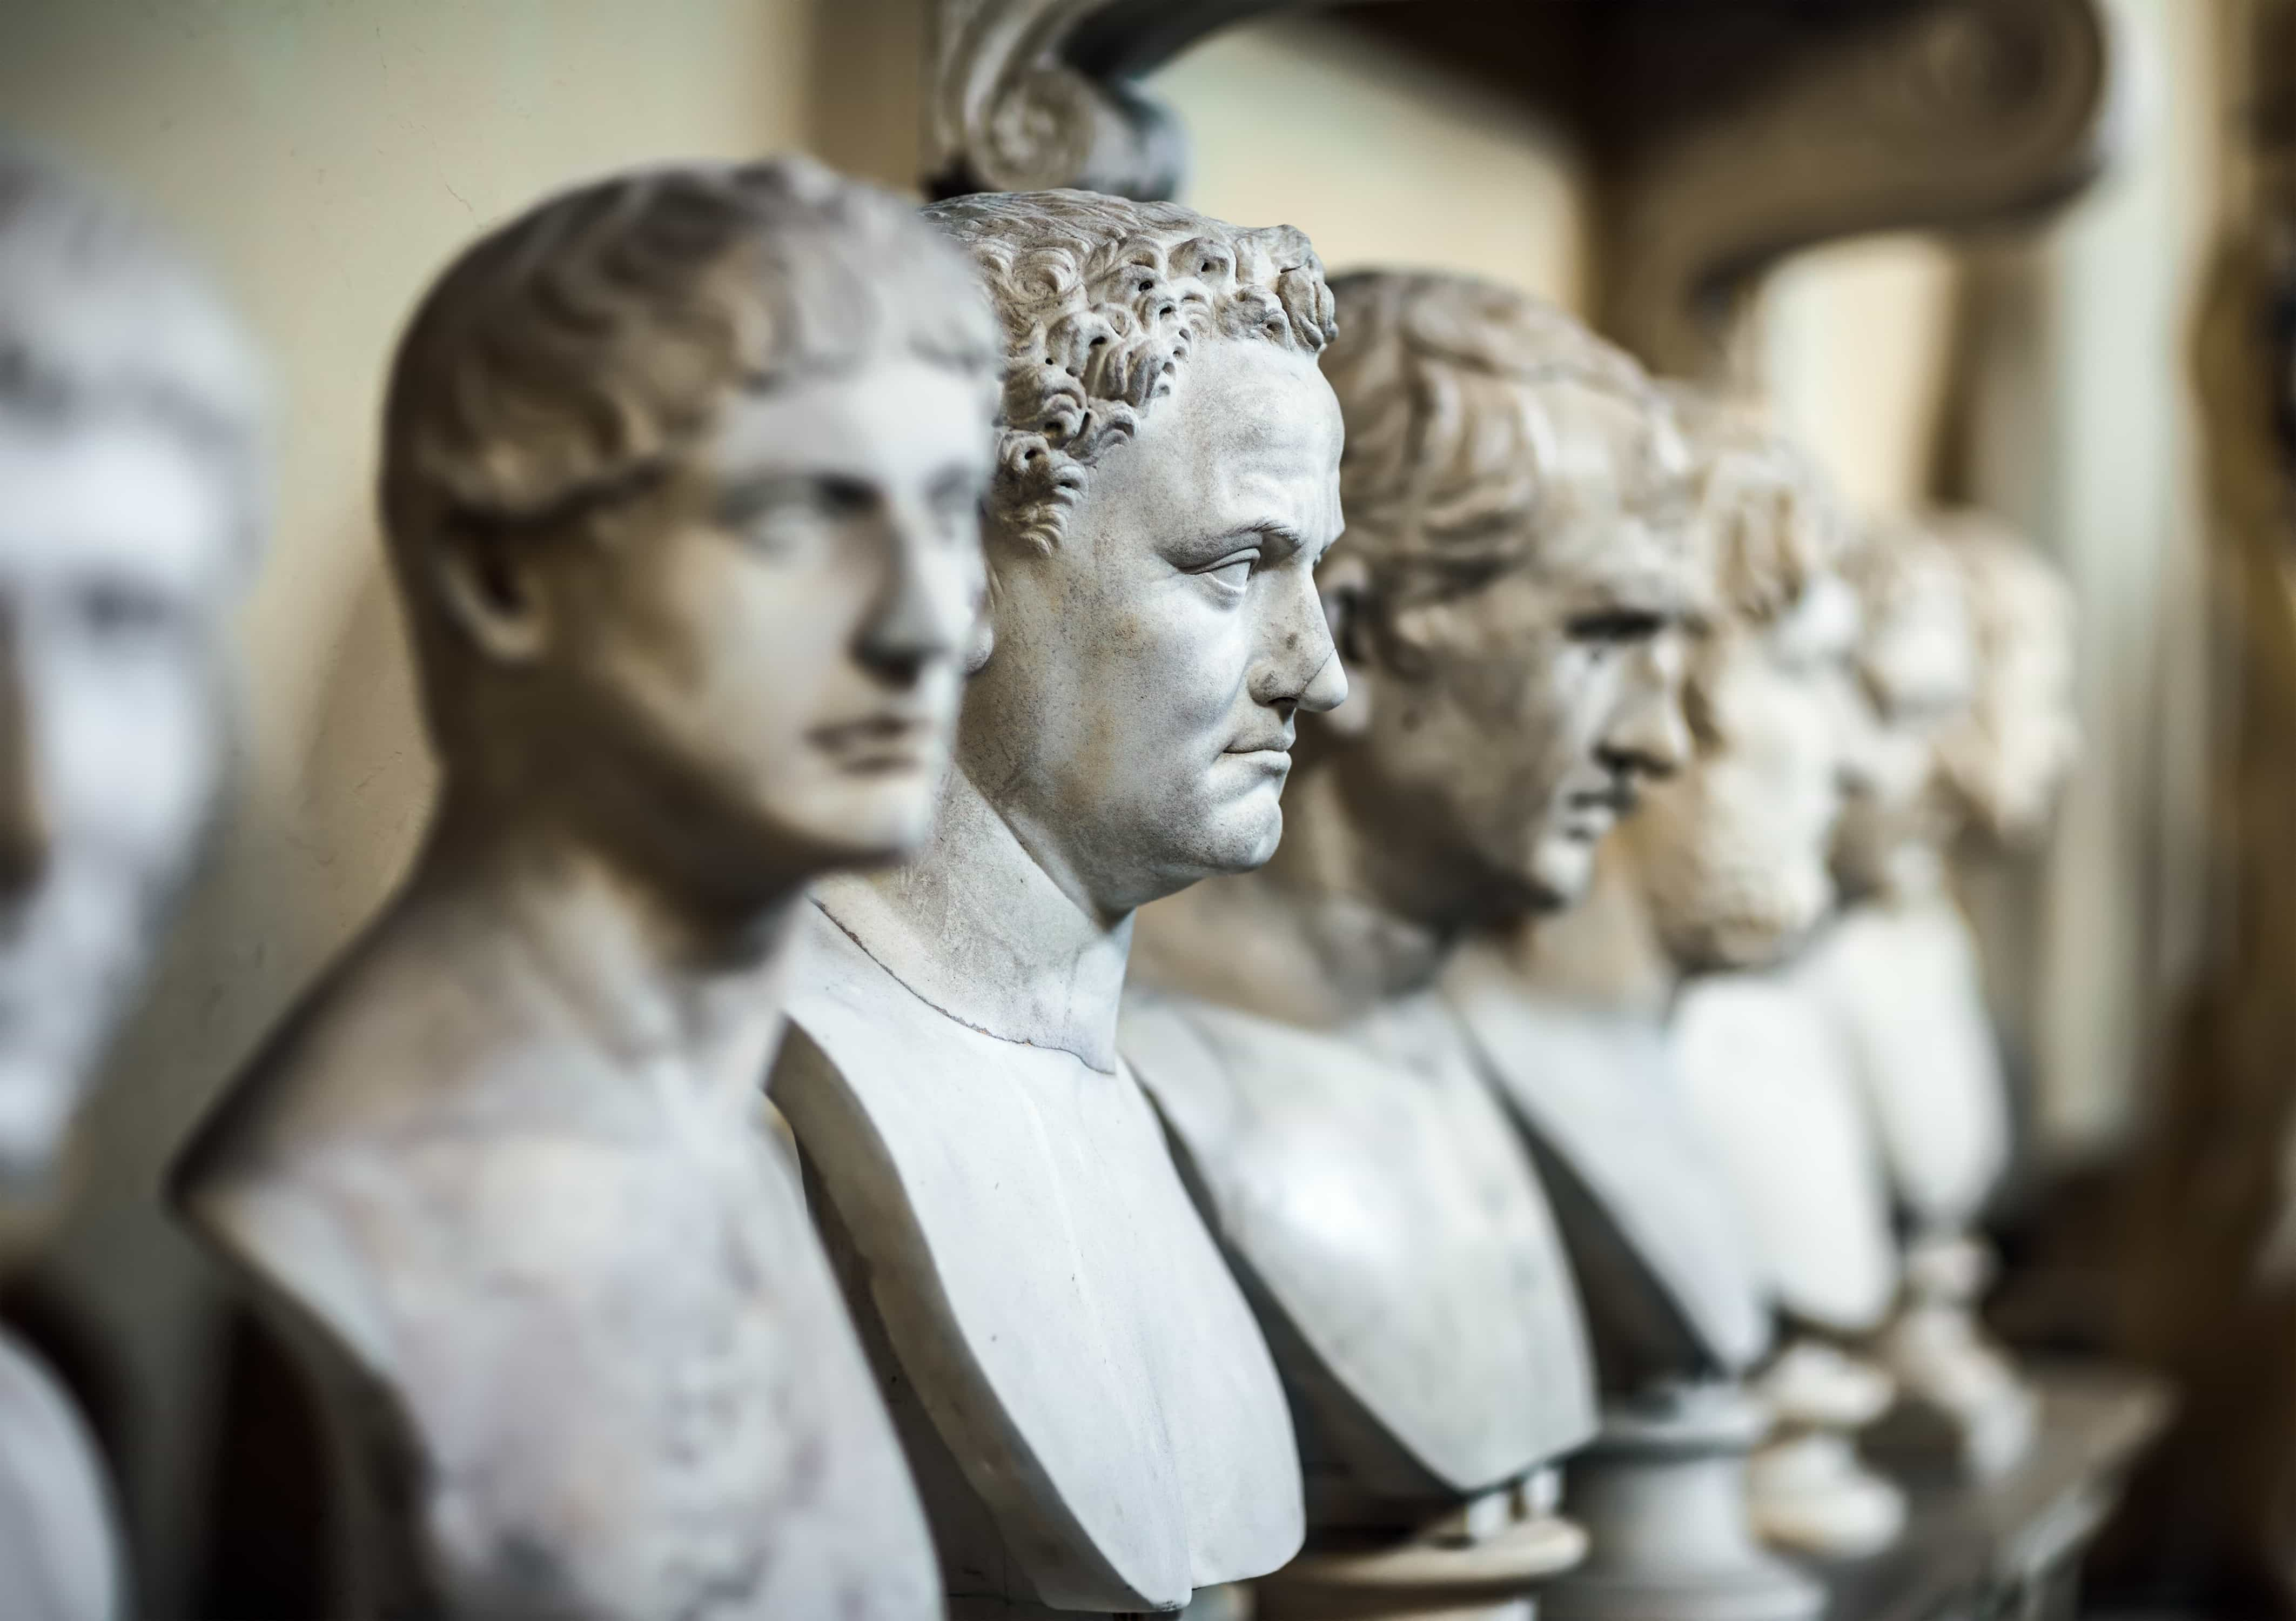 image of busts to be used in interior design